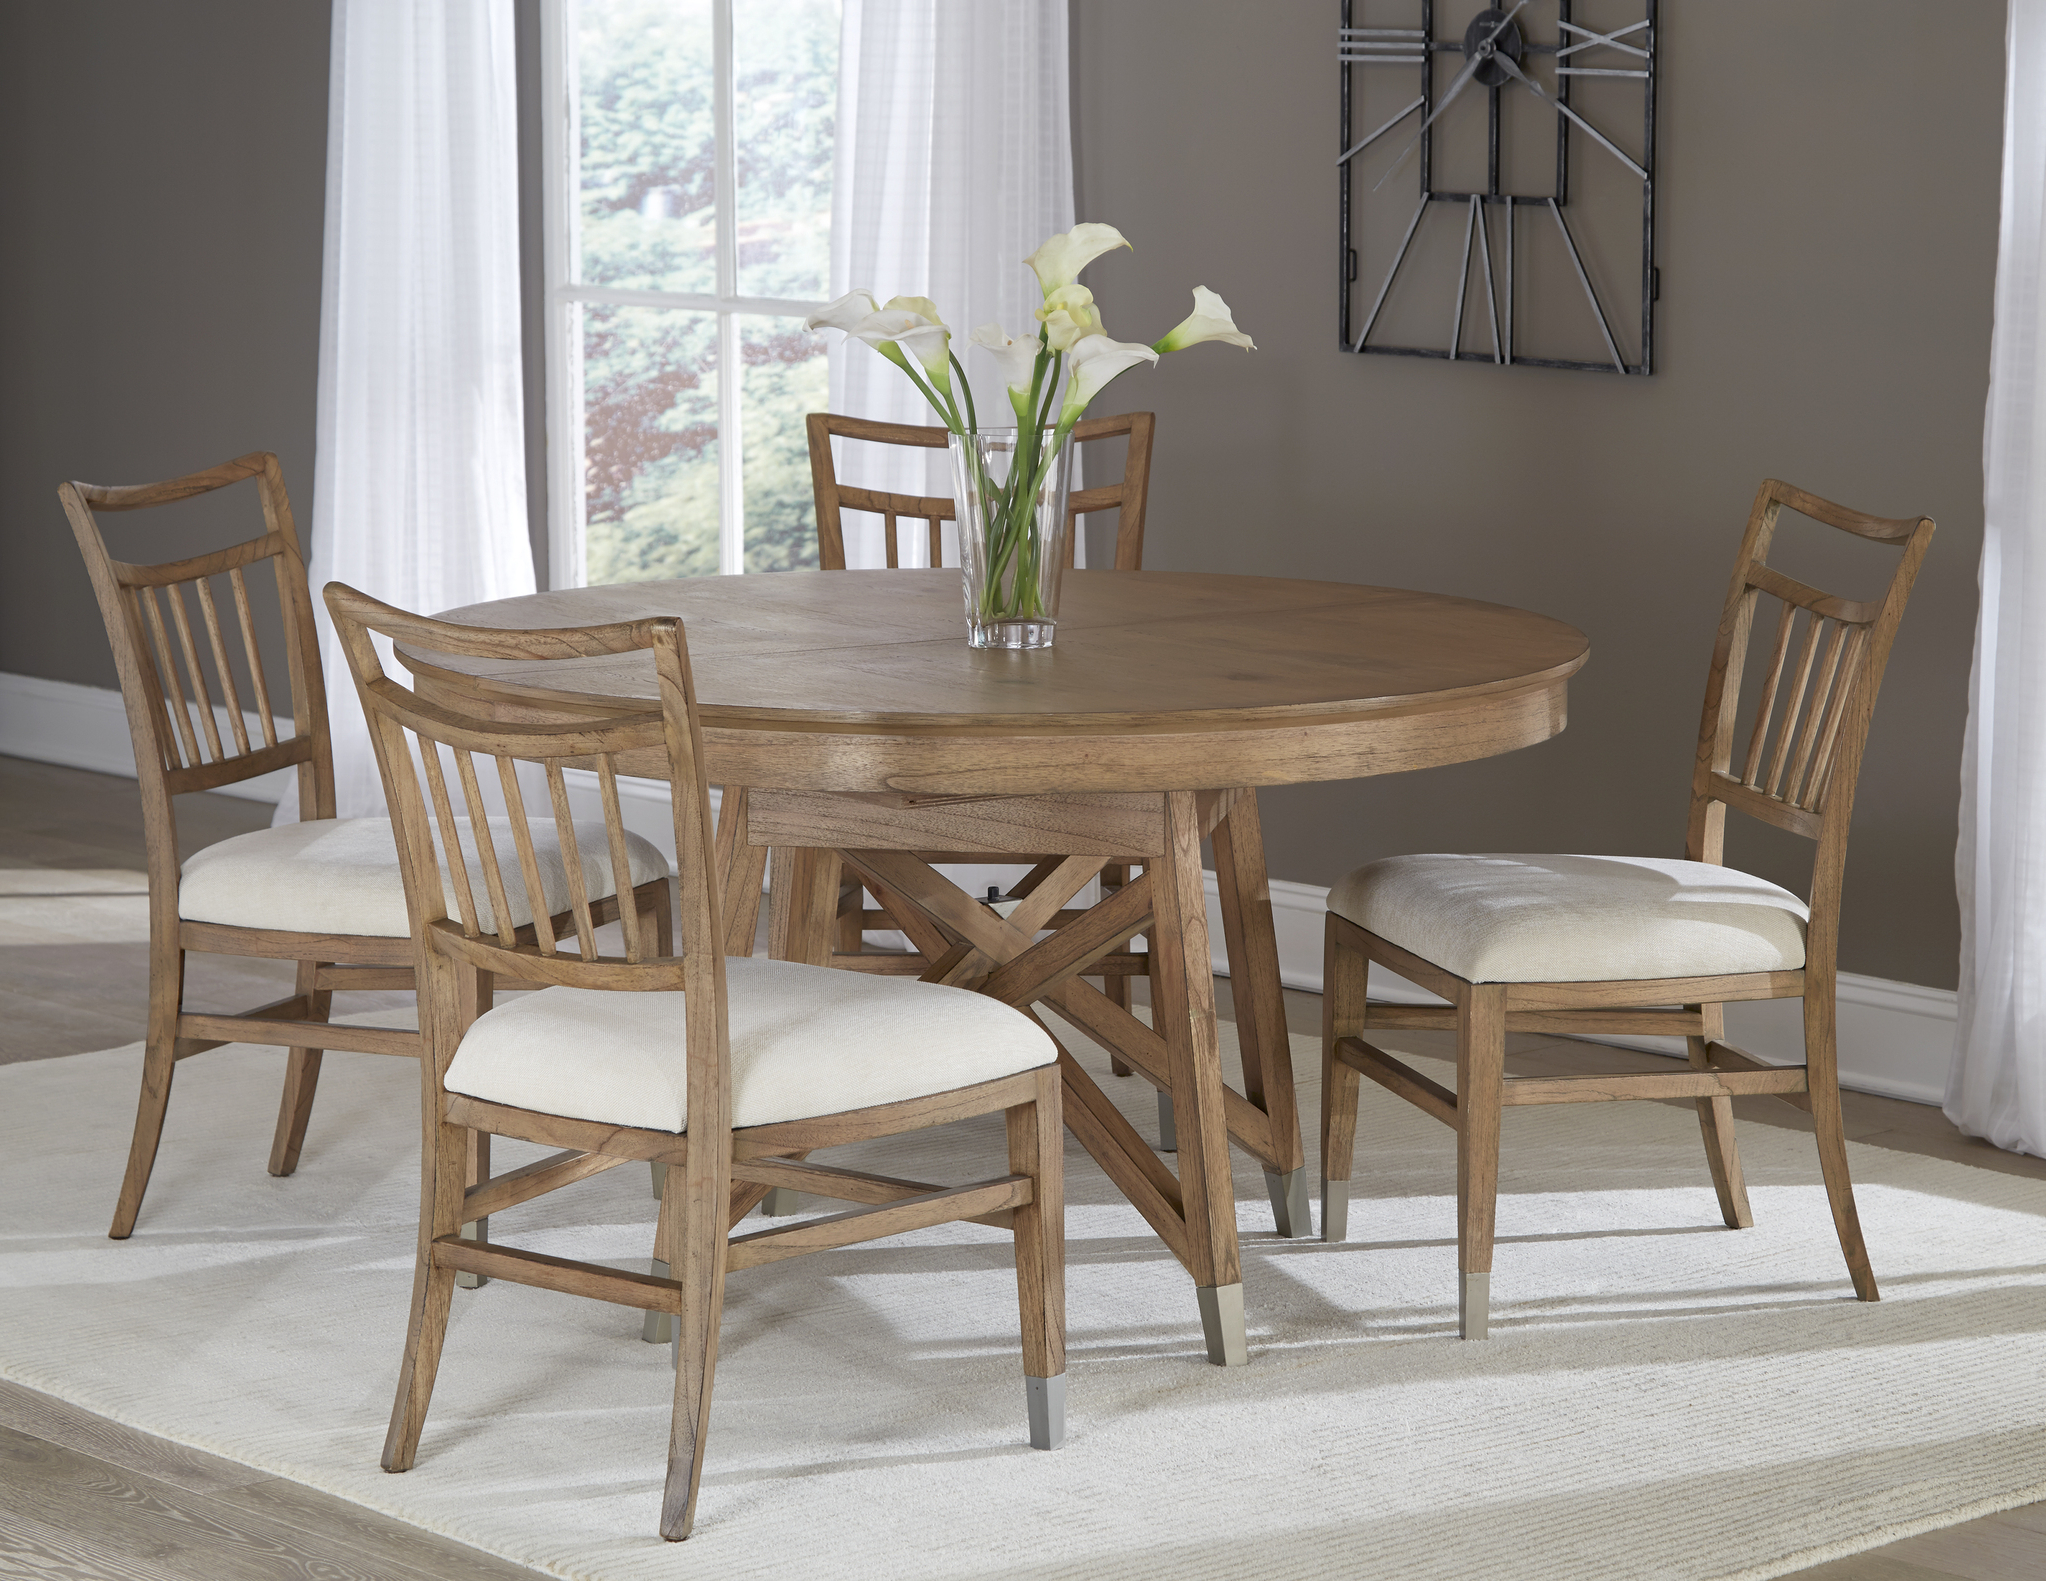 Recent Avery Round Dining Tables Pertaining To The Avery Park Round Table Dining Room Collection – (View 3 of 25)